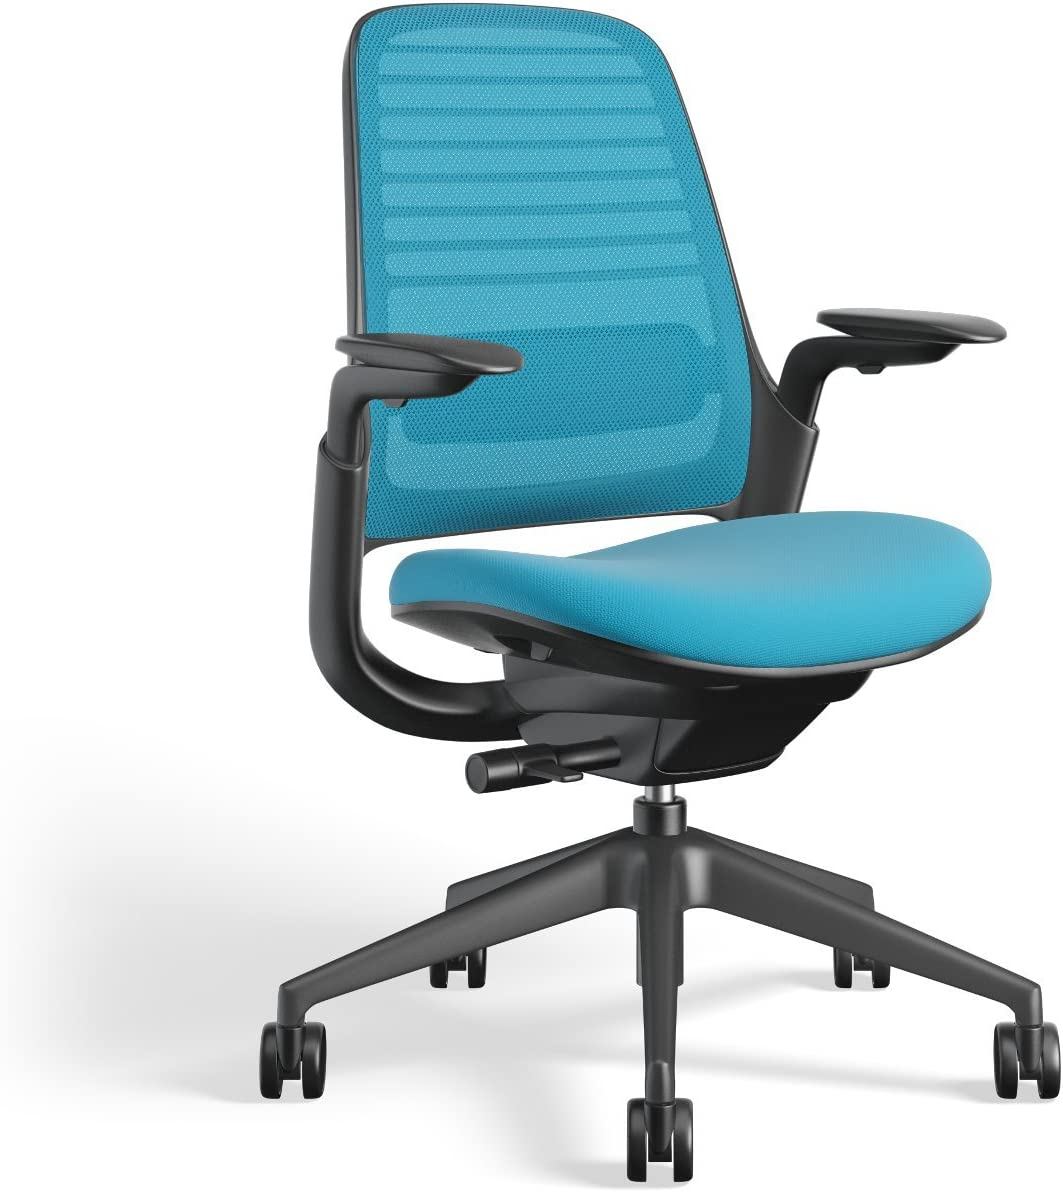 Steelcase Series 1 Work Office chair, Blue Jay